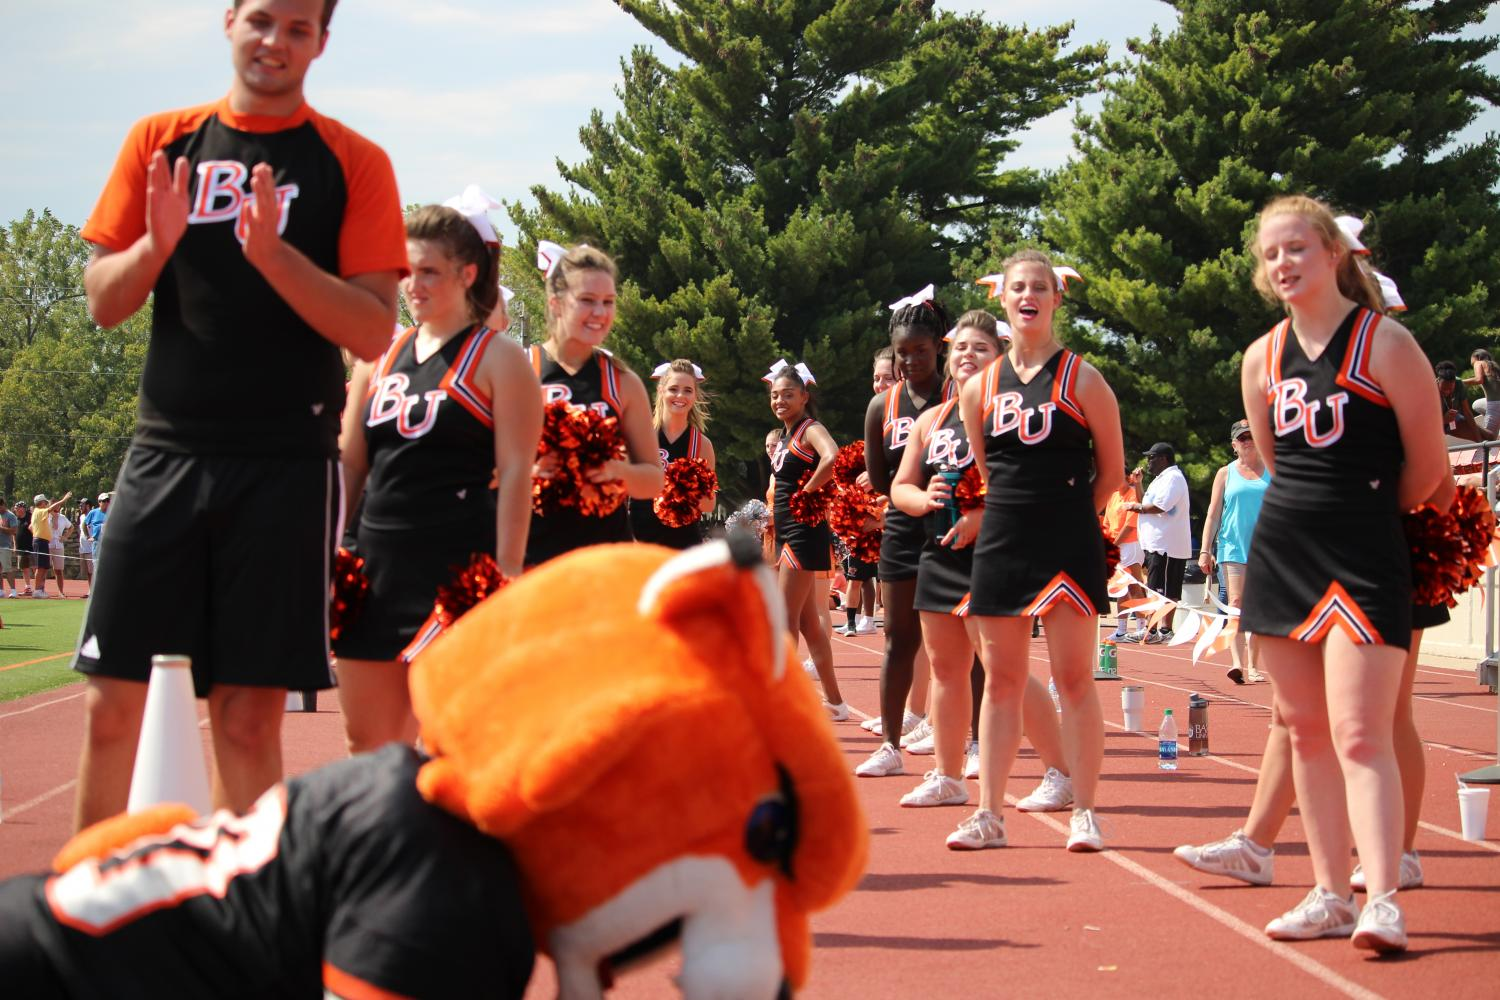 Entertaining the crowd, Wowzer the Wildcat does pushups for touchdowns while the cheerleaders count out loud.